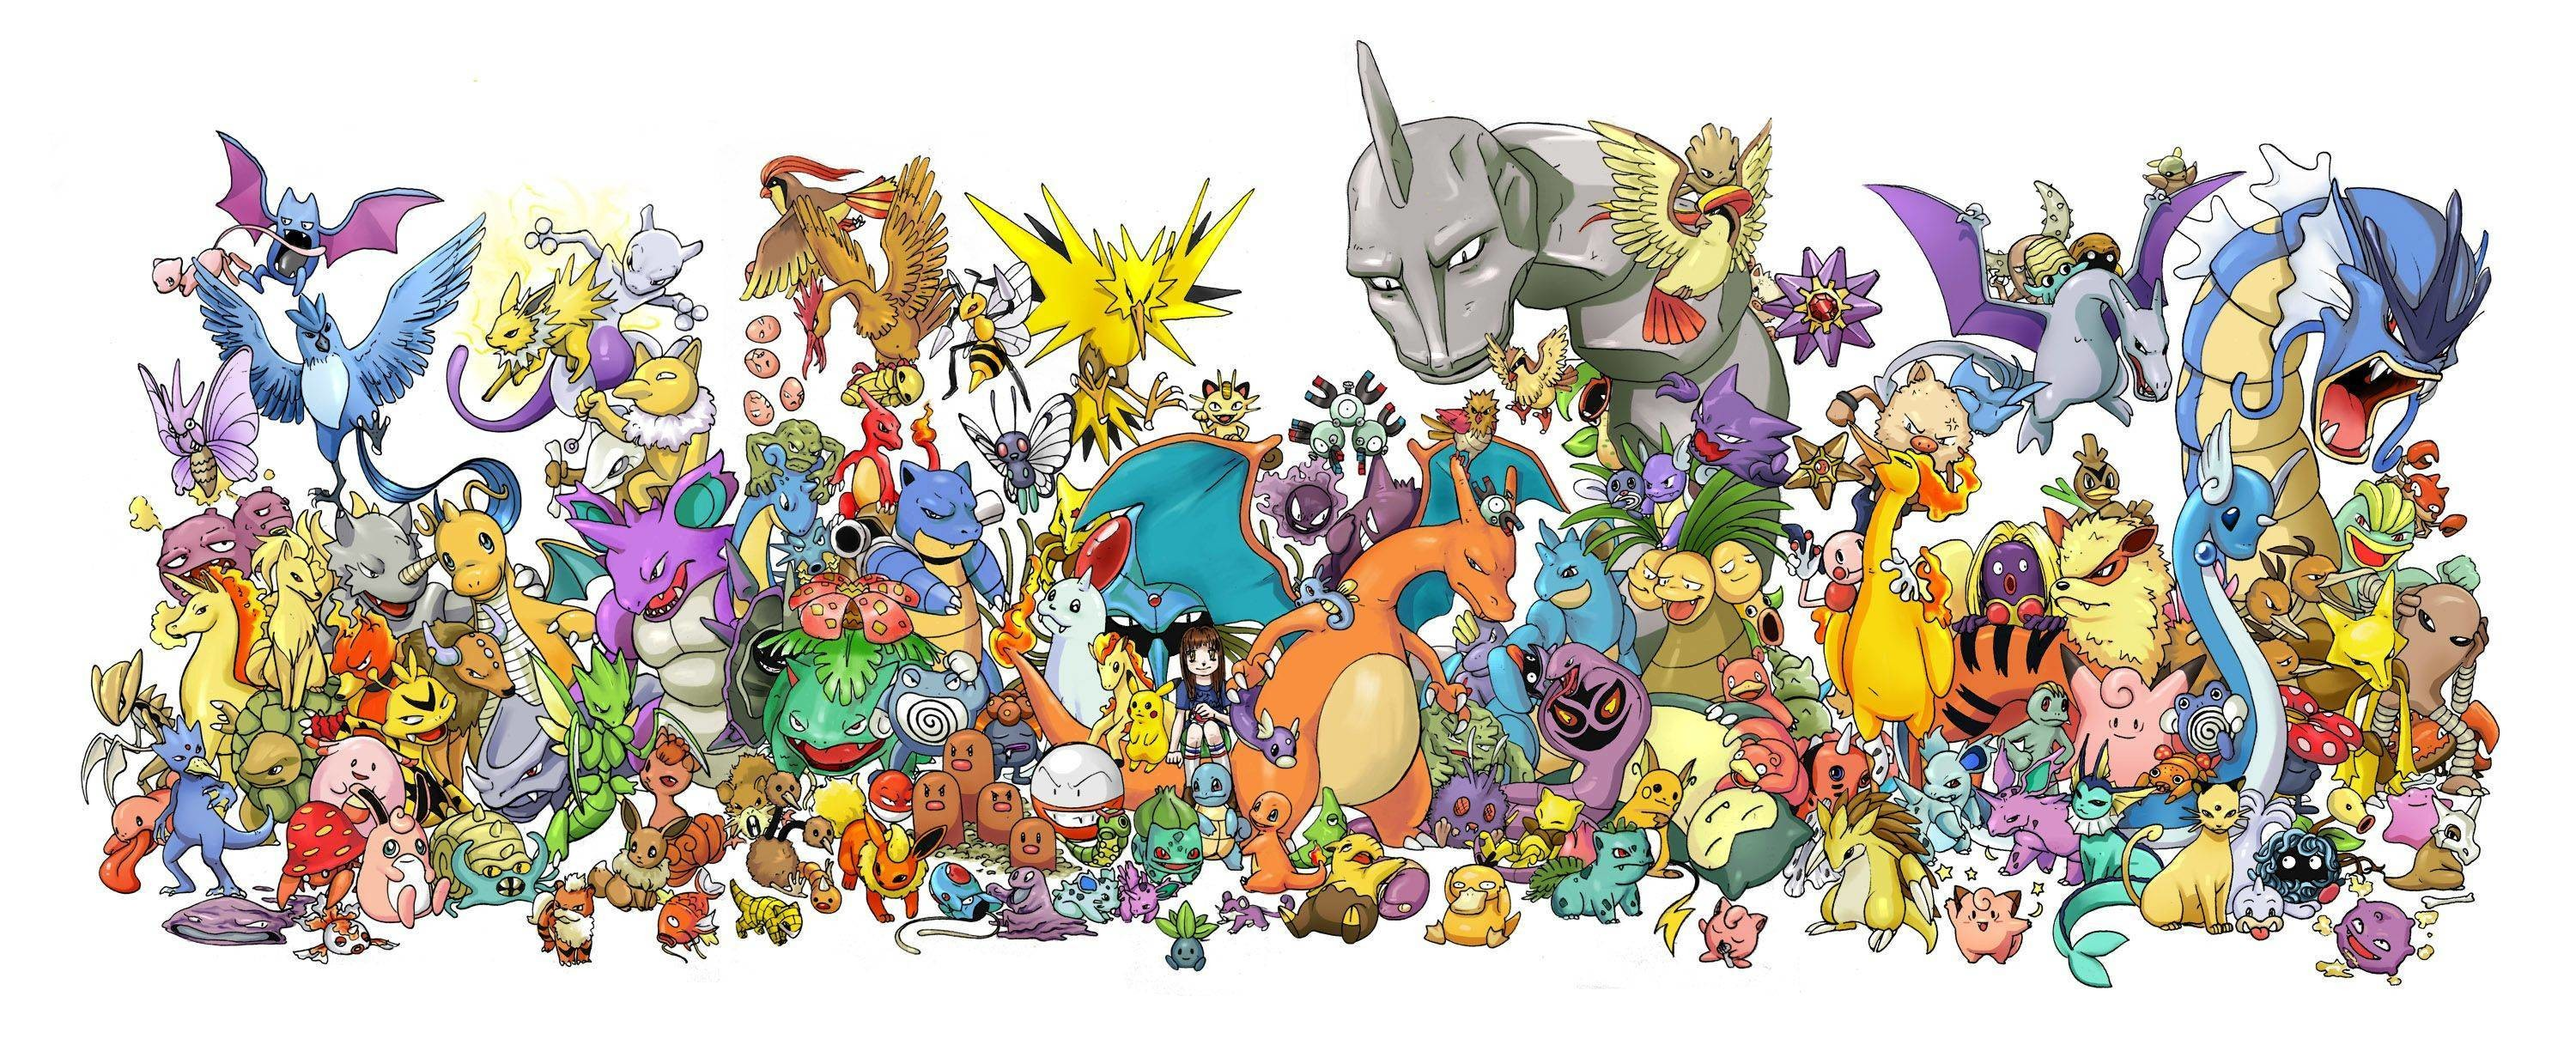 All Legendary Pokemon Wallpaper 79 Images